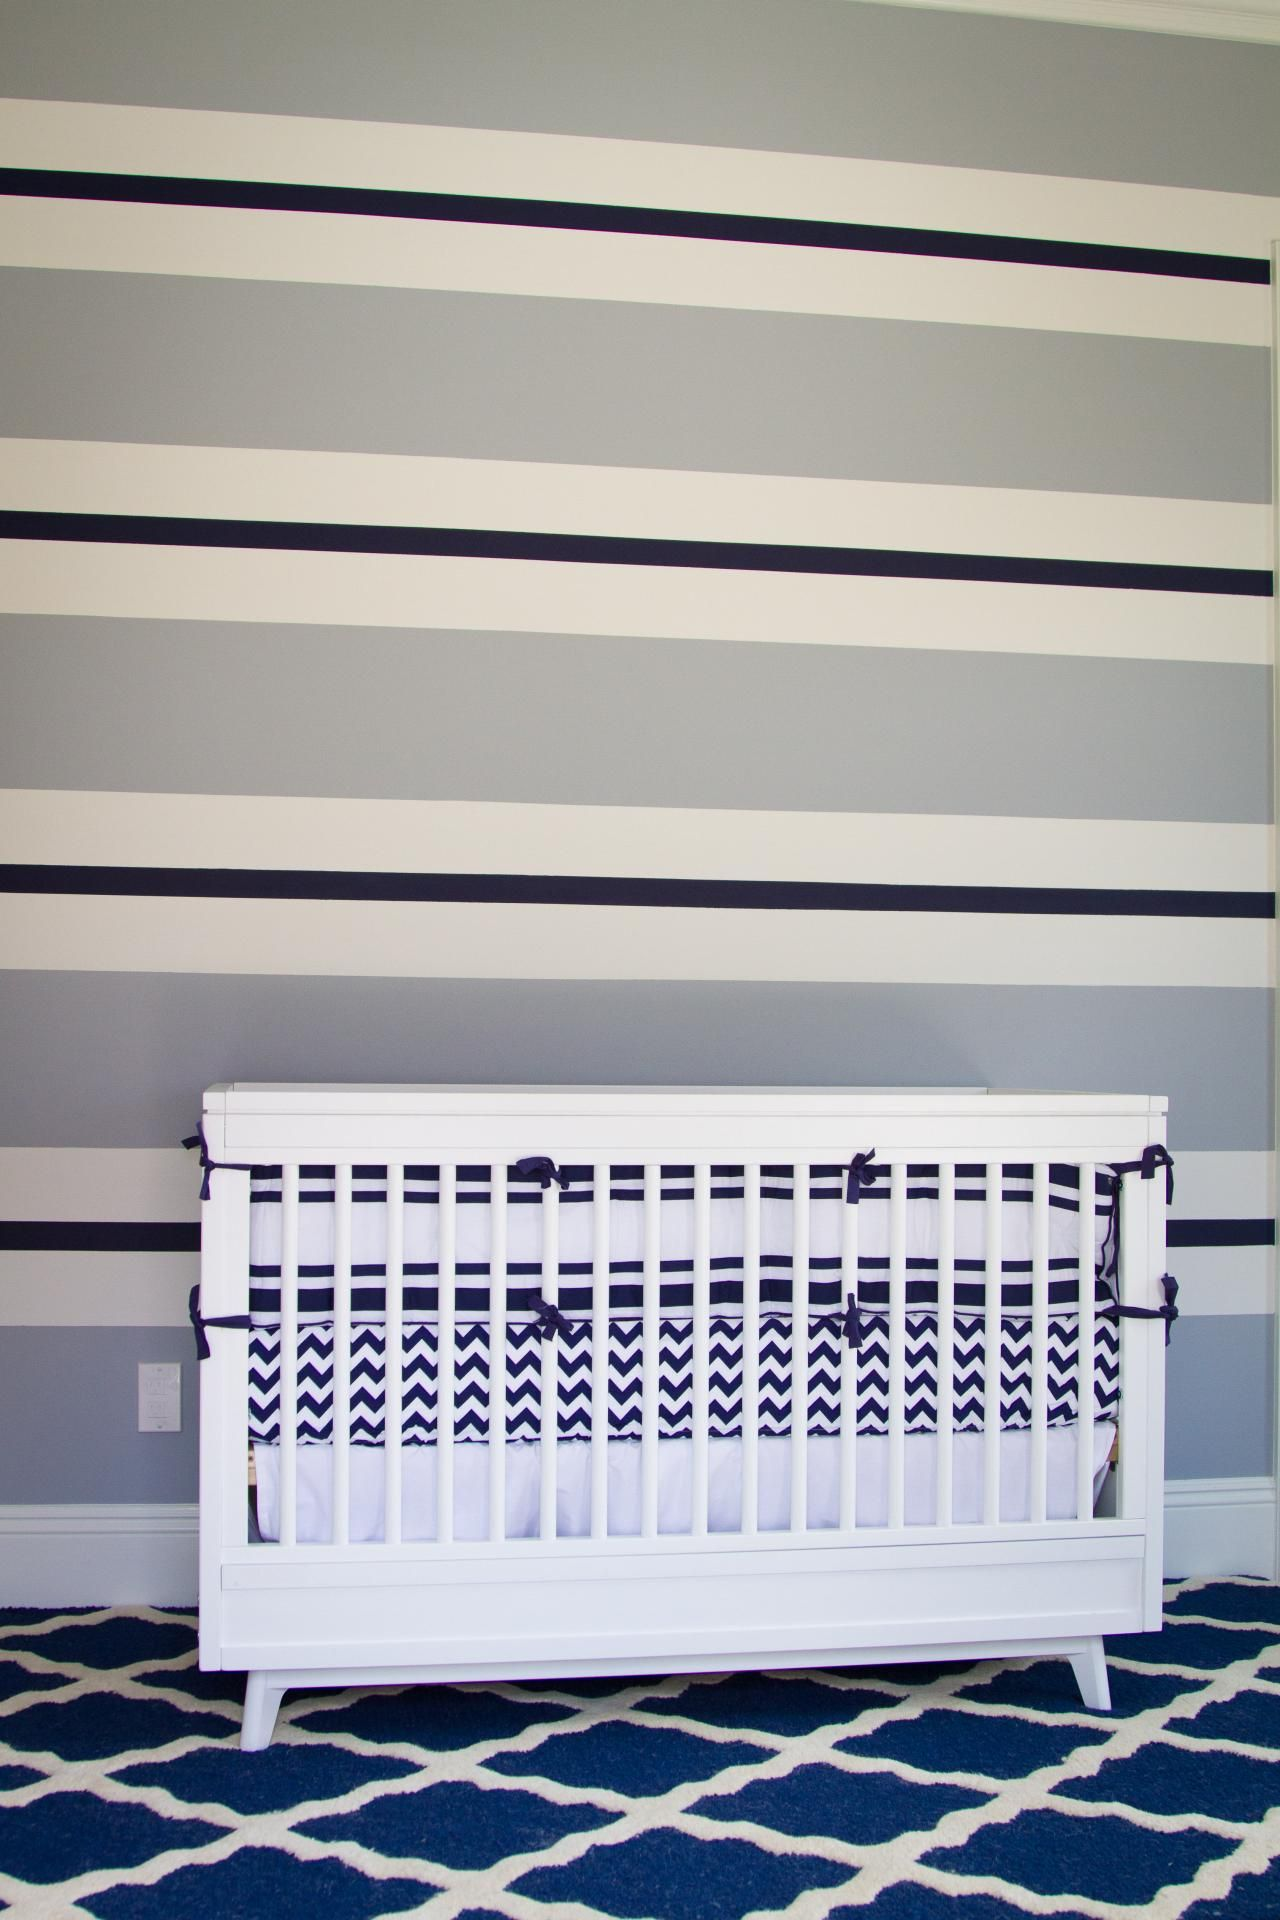 Painted Horizontal Stripes Adorn An Accent Wall In This Contemporary Nursery Pulling Together The Room Nursery Accent Wall Striped Walls Striped Accent Walls